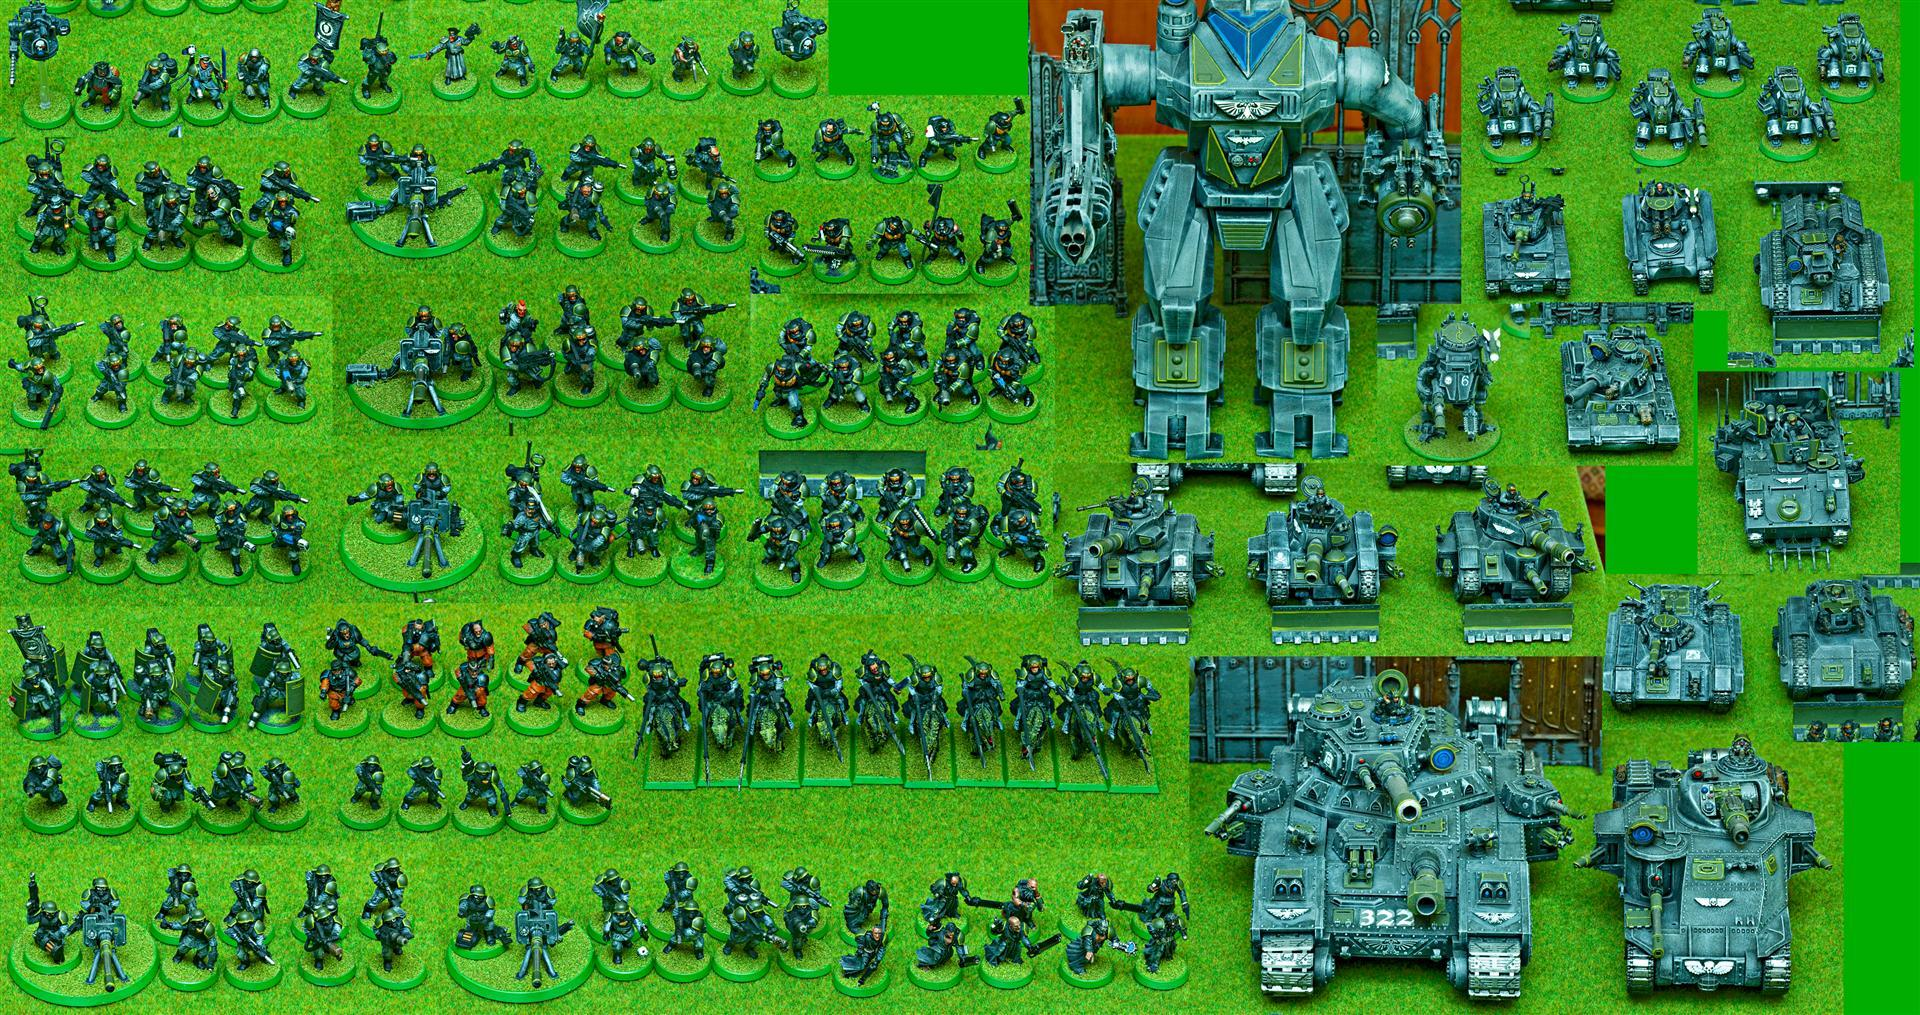 Apocalypse, Army, At43, Baneblade, Chimera, Chimeras, Comissar, Command Squad, Commander, Conversion, Count As, Gaming Mat, Green, Grey, Guard, Guard Army, Heavy Weapon, Hellhound, Imperial, Imperial Guard, Imperials, Leman Russ, Leman Russ Squadron, Malcador, Penal Legion, Penal Legion Squad, Priest, Rough Riders, Sentinel, Spyker Battle Squad, Verterans, Veteran, Warhound